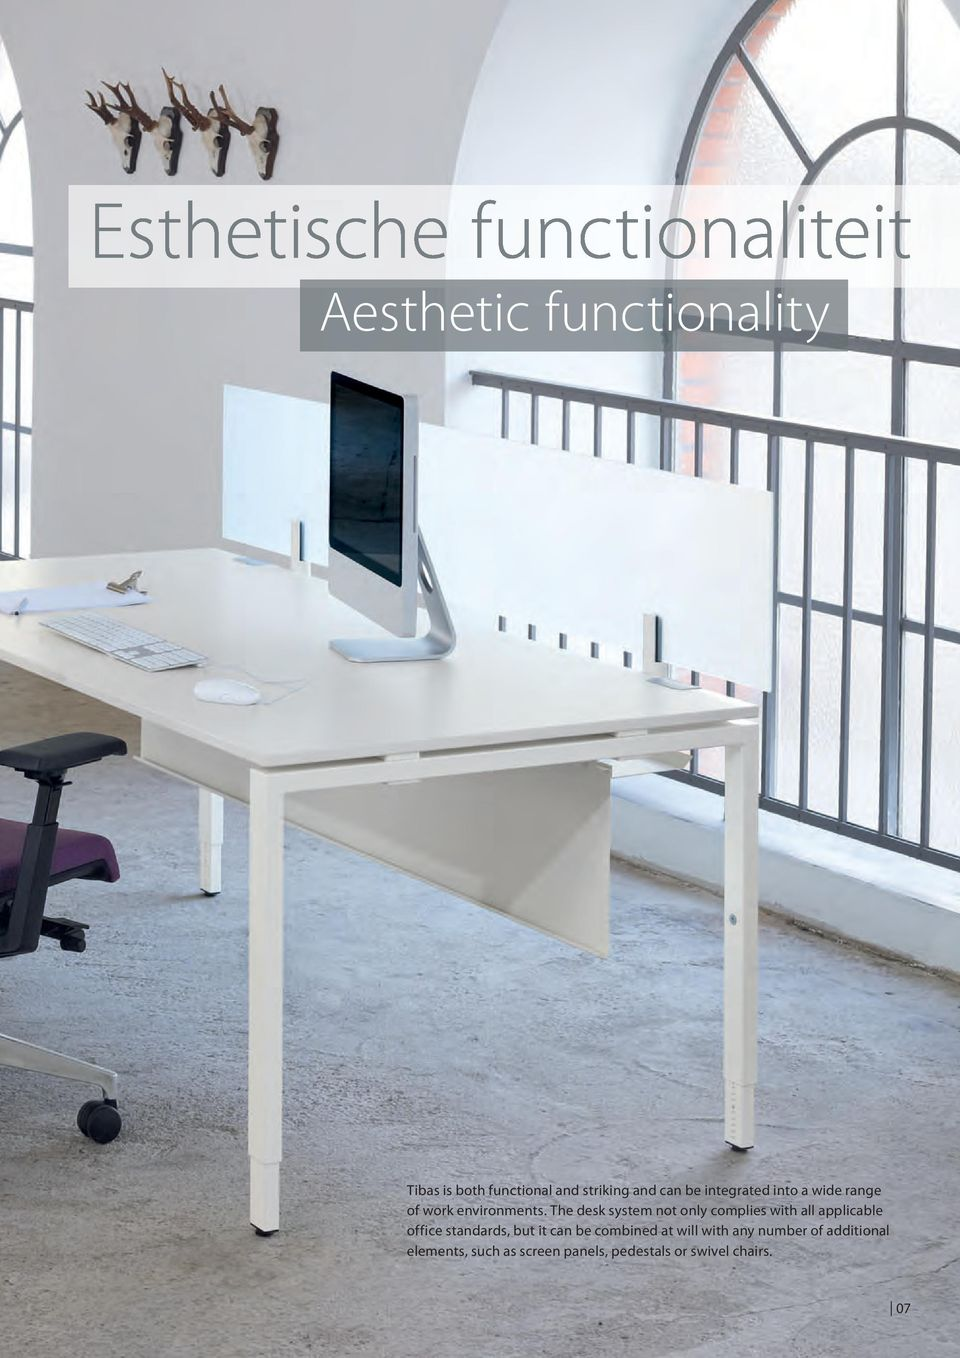 The desk system not only complies with all applicable office standards, but it